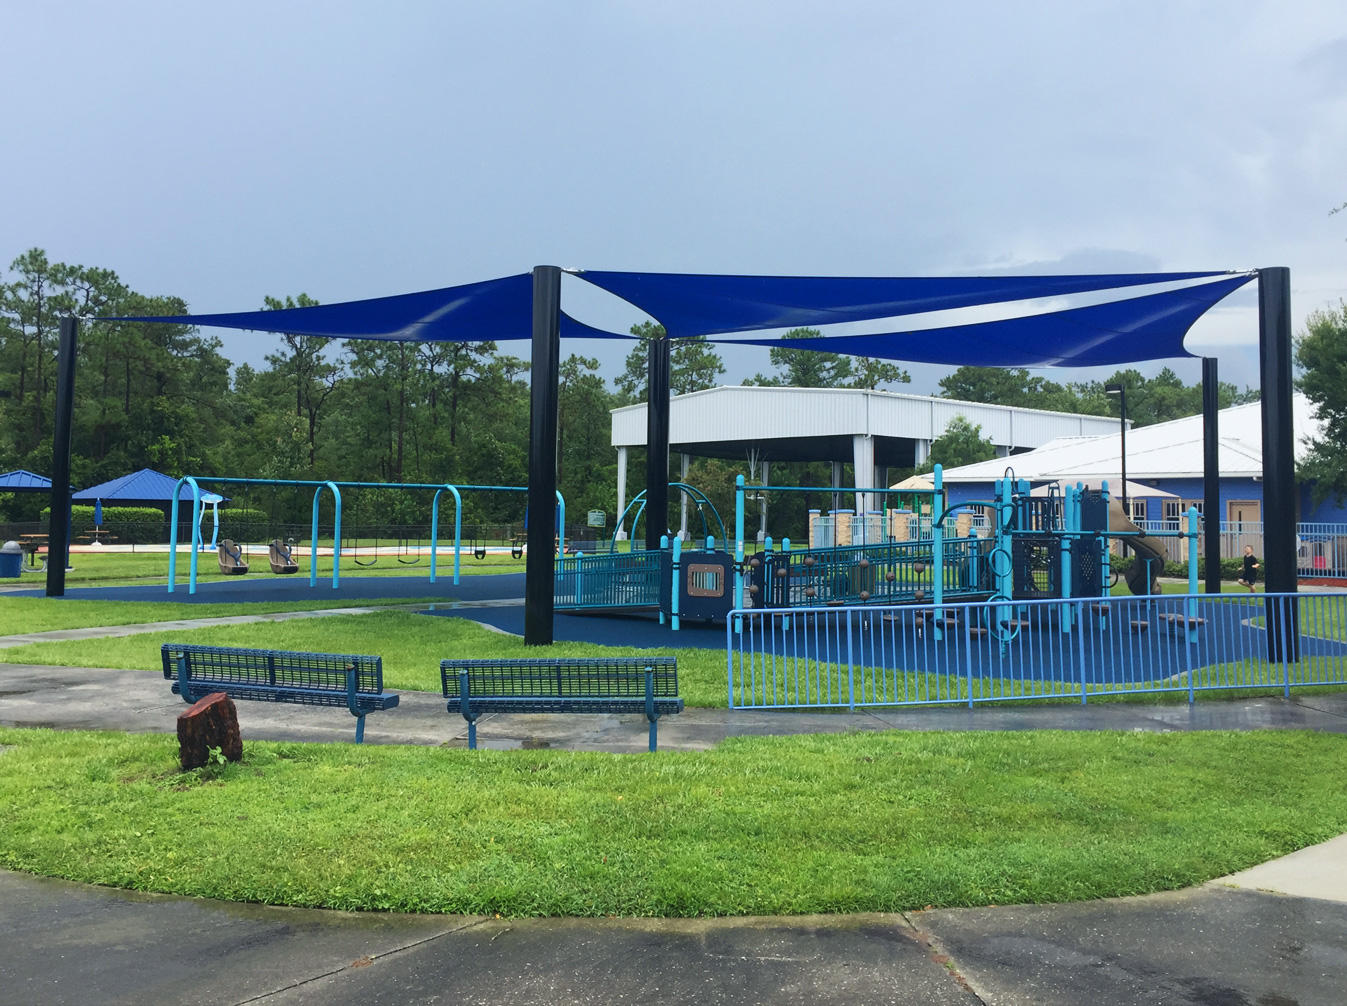 image of shade structure covering playground